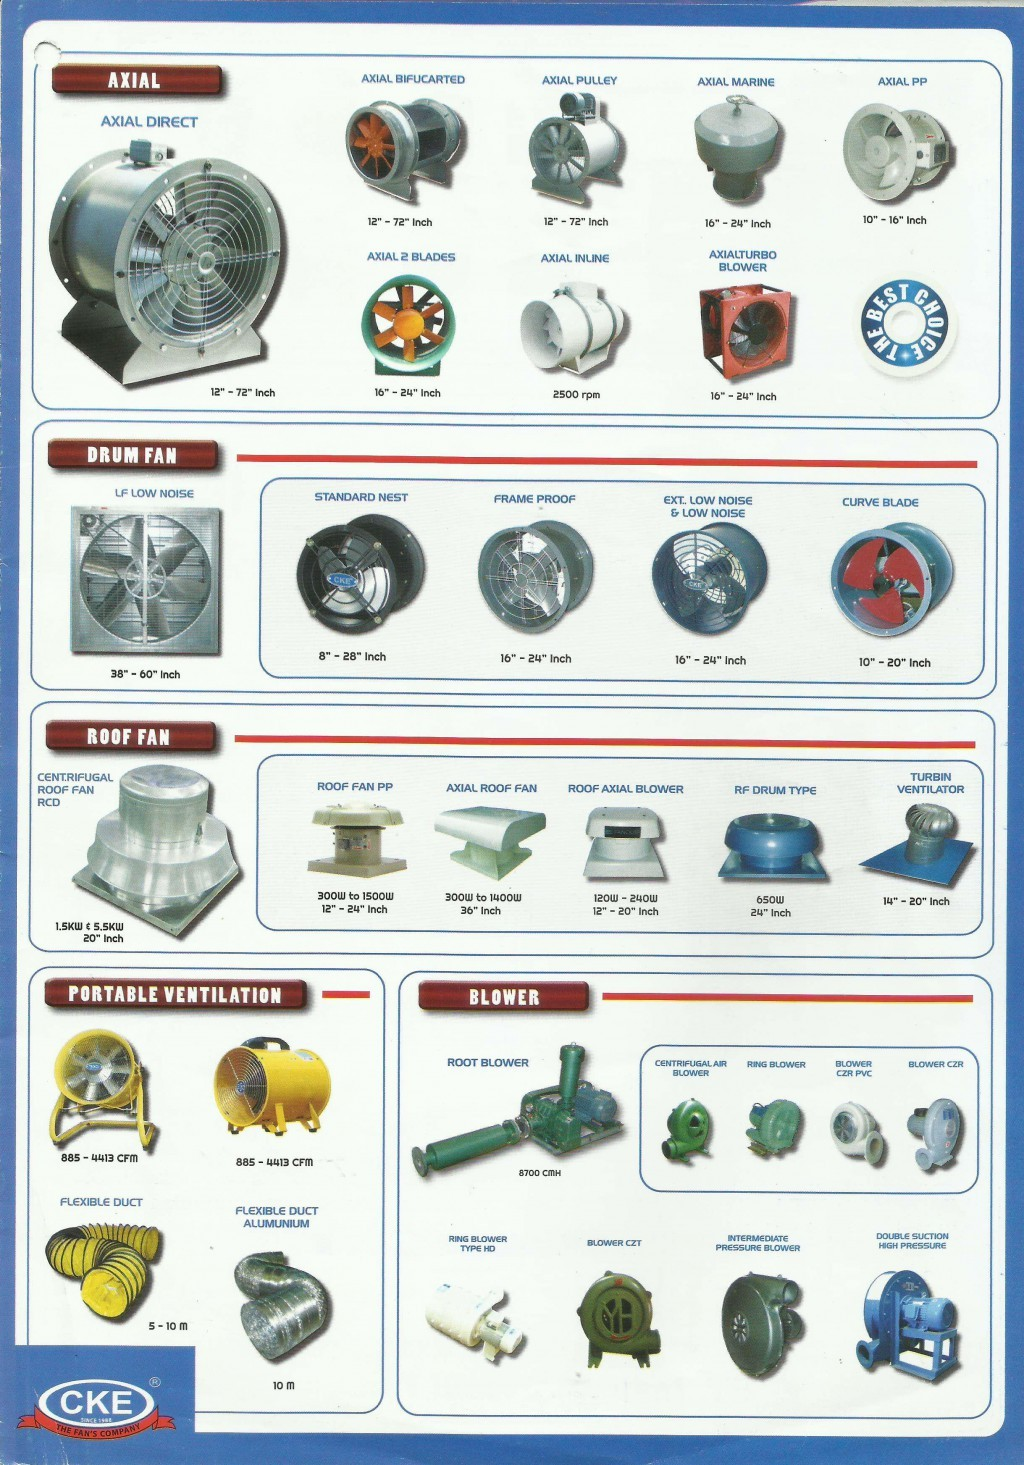 FAN, CKE, Axial, Drum Fan, Roof Fan, Portable Ventilation, Blower